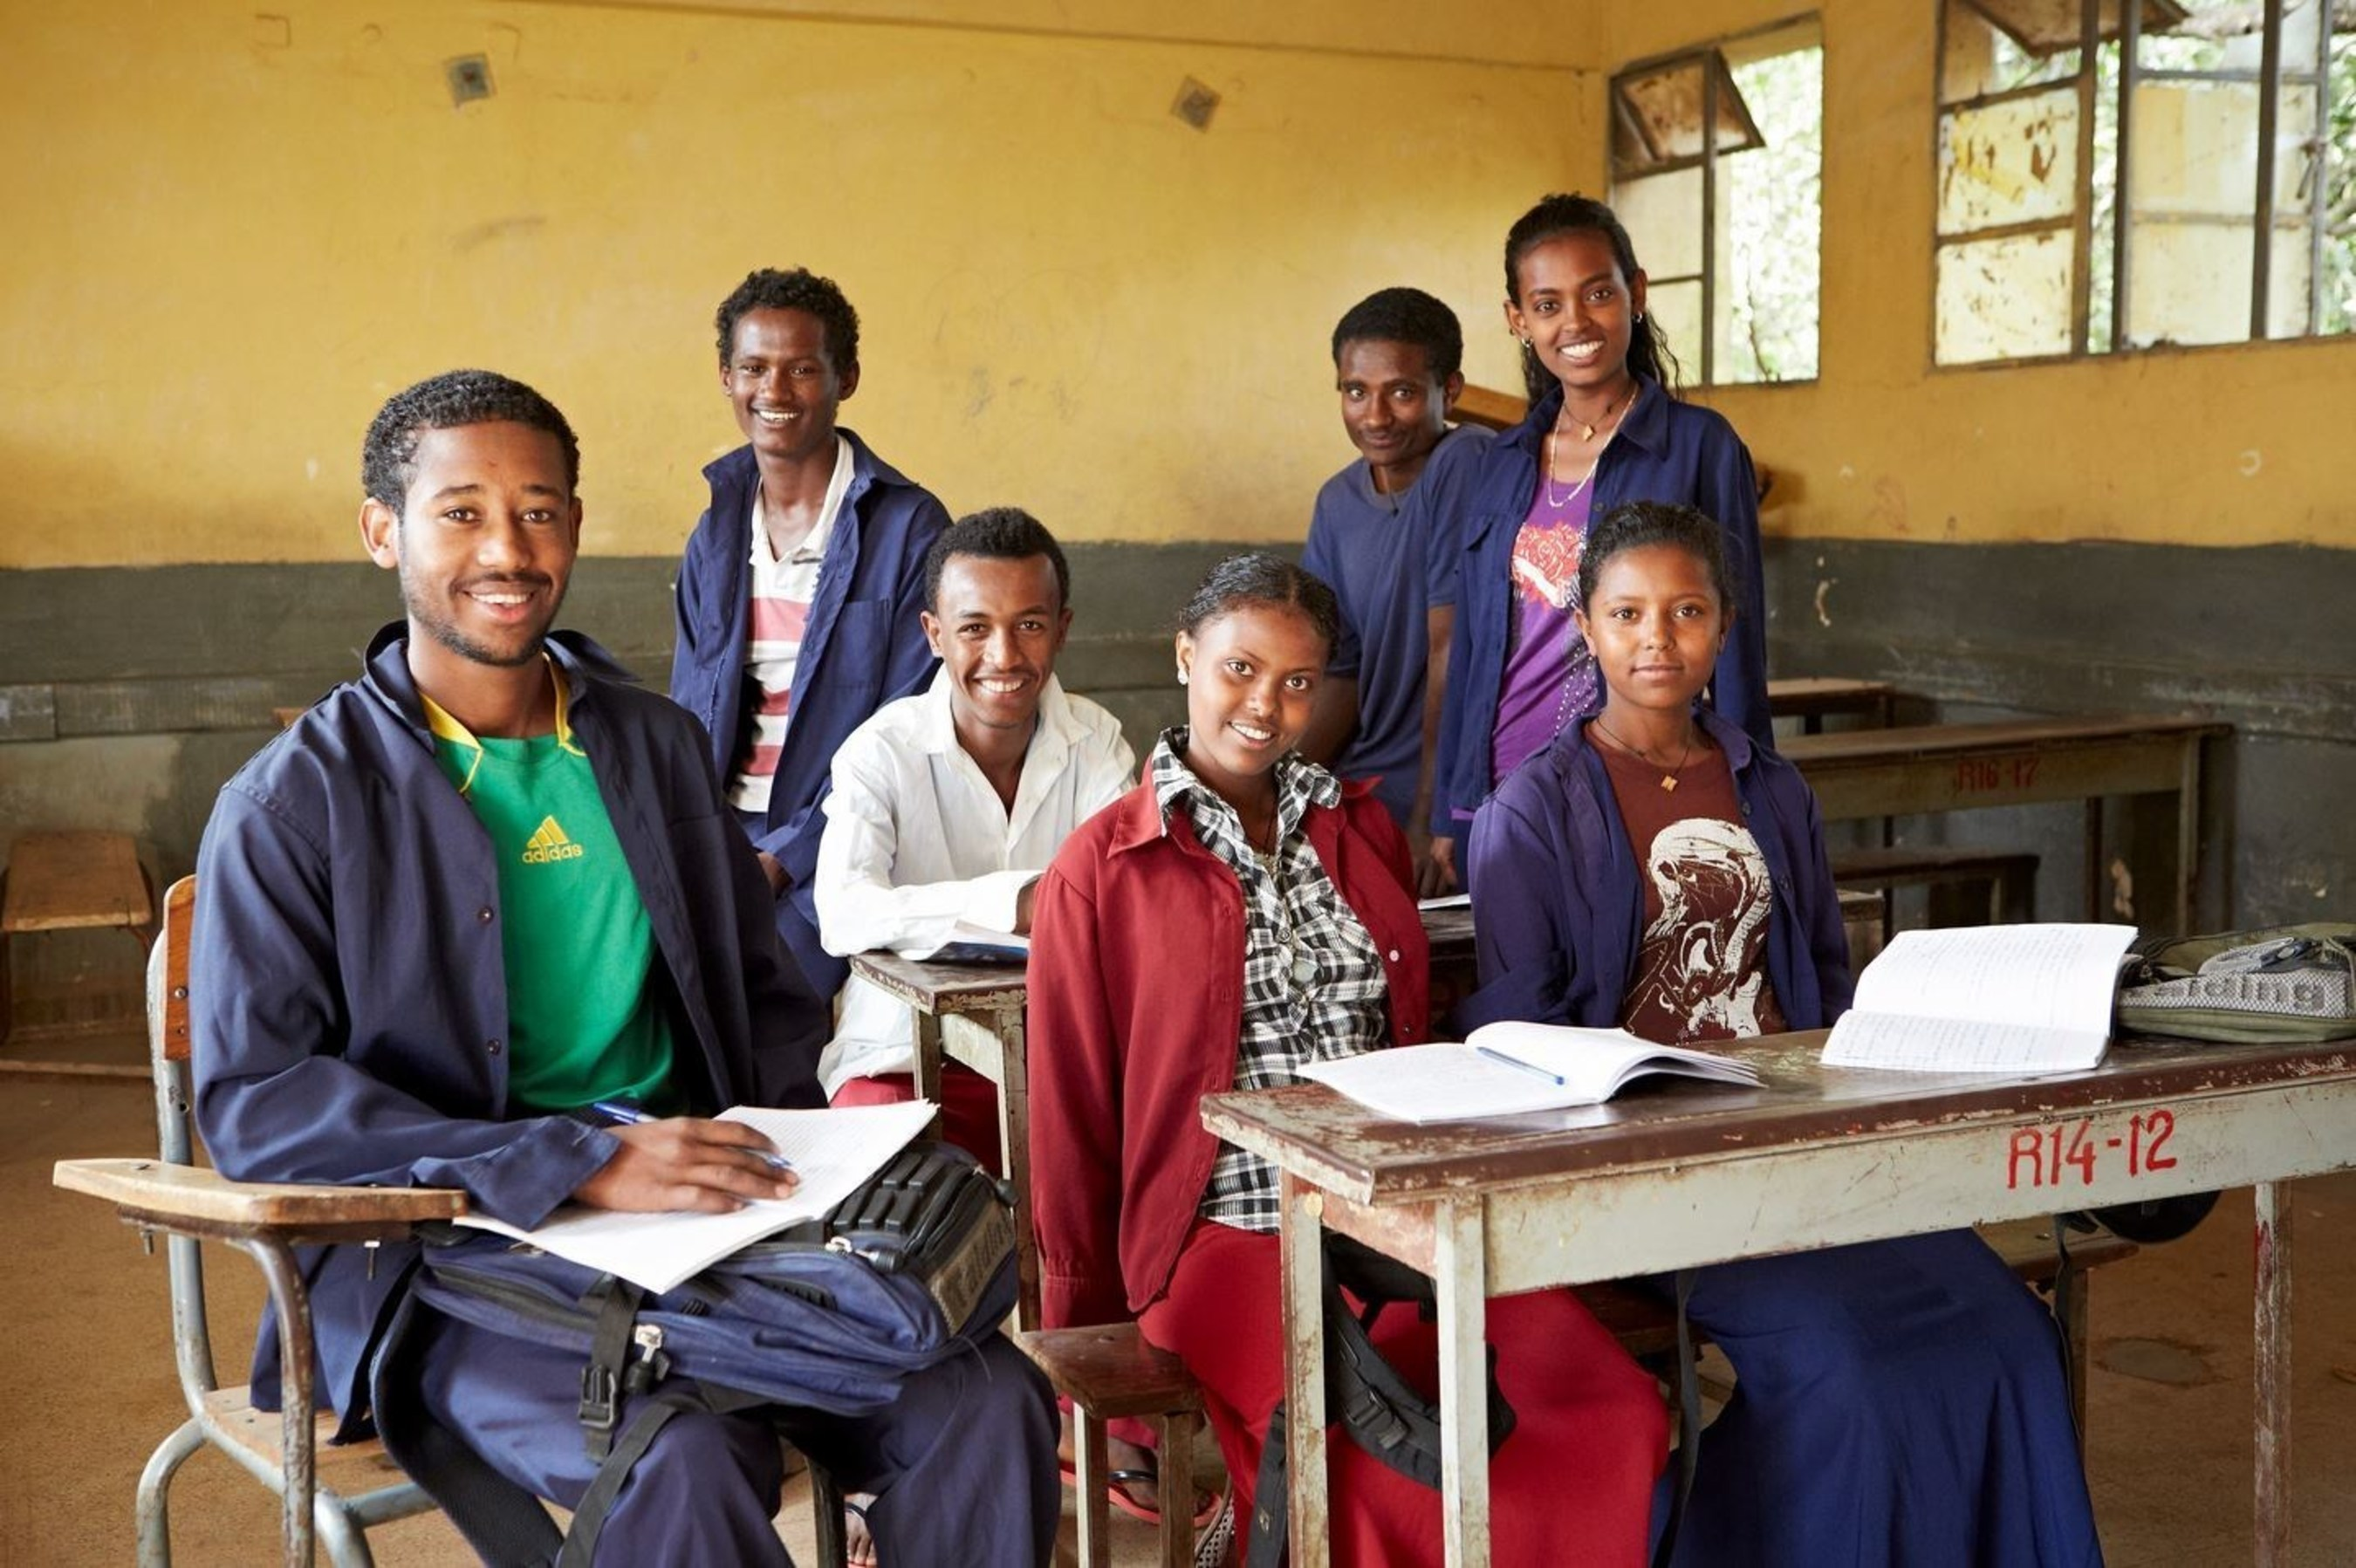 Group portrait of youth supported by SOS Children's Villages in classroom in Bahir Dar, Ethopia. Credit: Michela Morosini